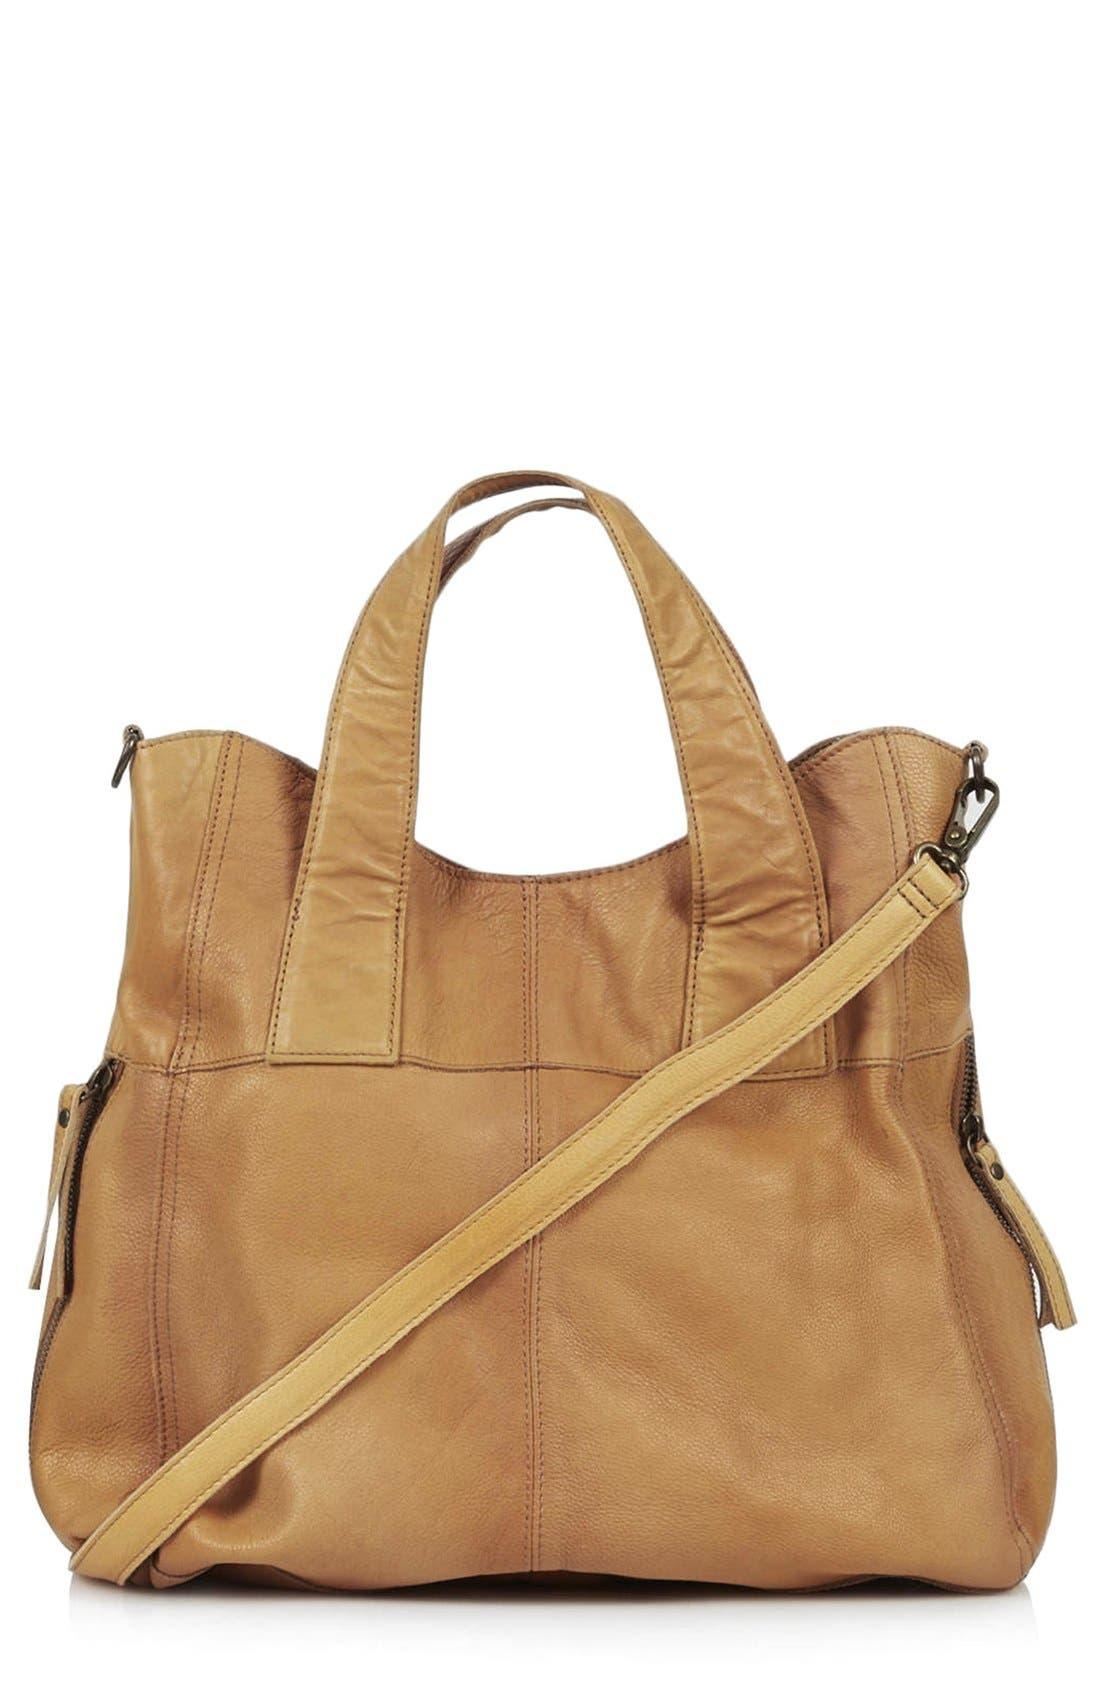 Alternate Image 1 Selected - Topshop 'Alba' Leather Hobo Bag